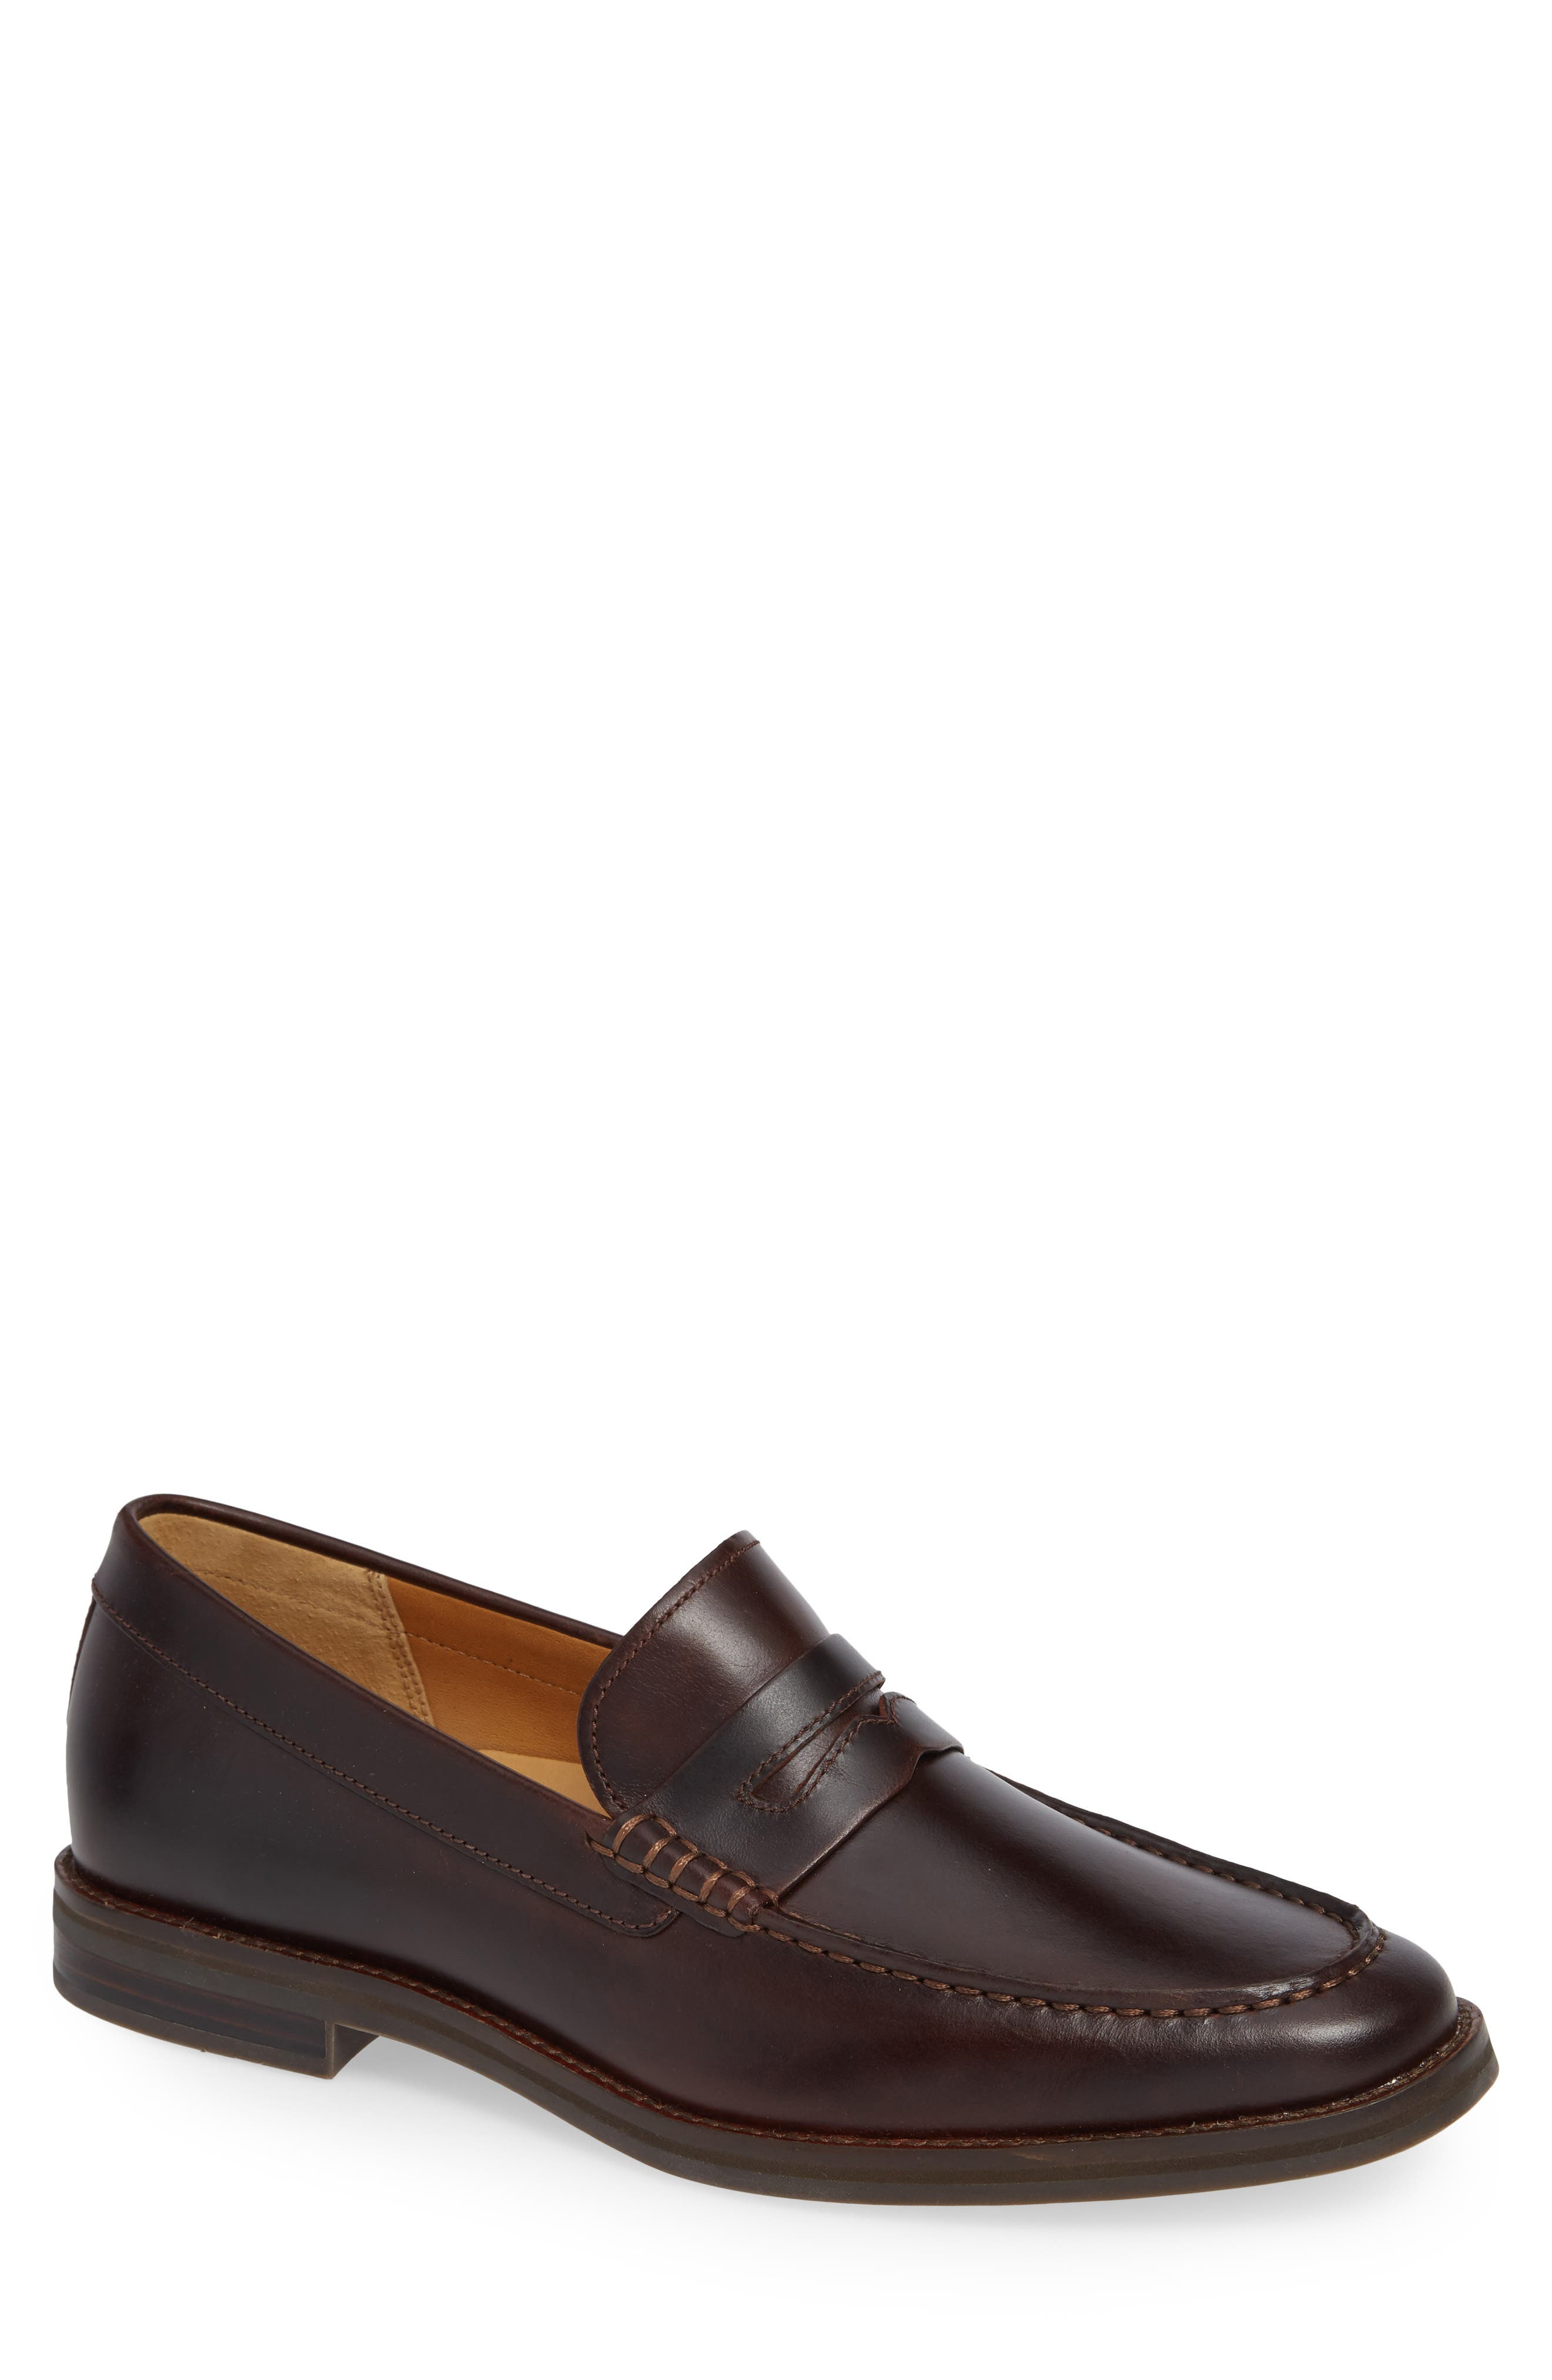 Gold Cup Exeter Penny Loafer,                         Main,                         color, AMARETTO